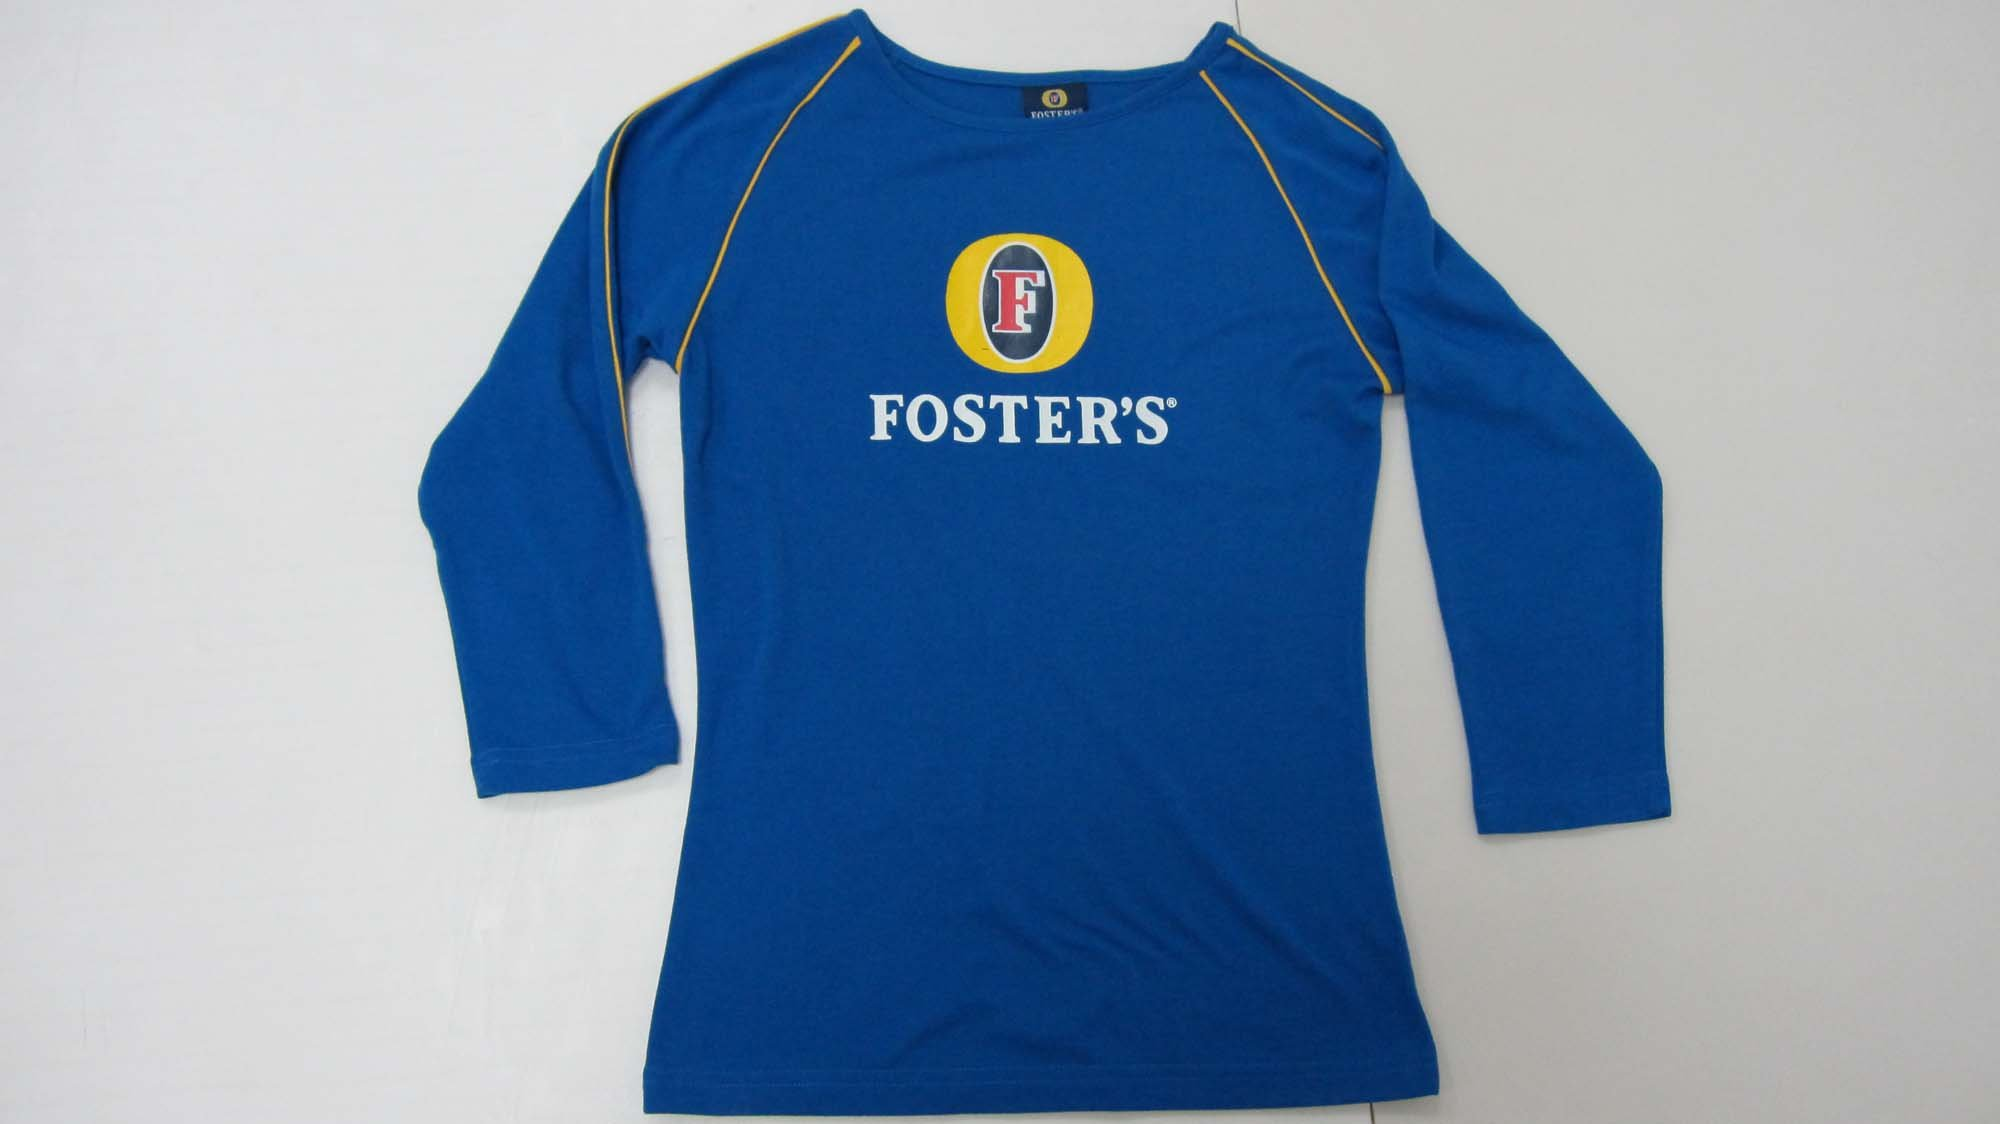 T shirt printing and embroidery services for T shirt printing services